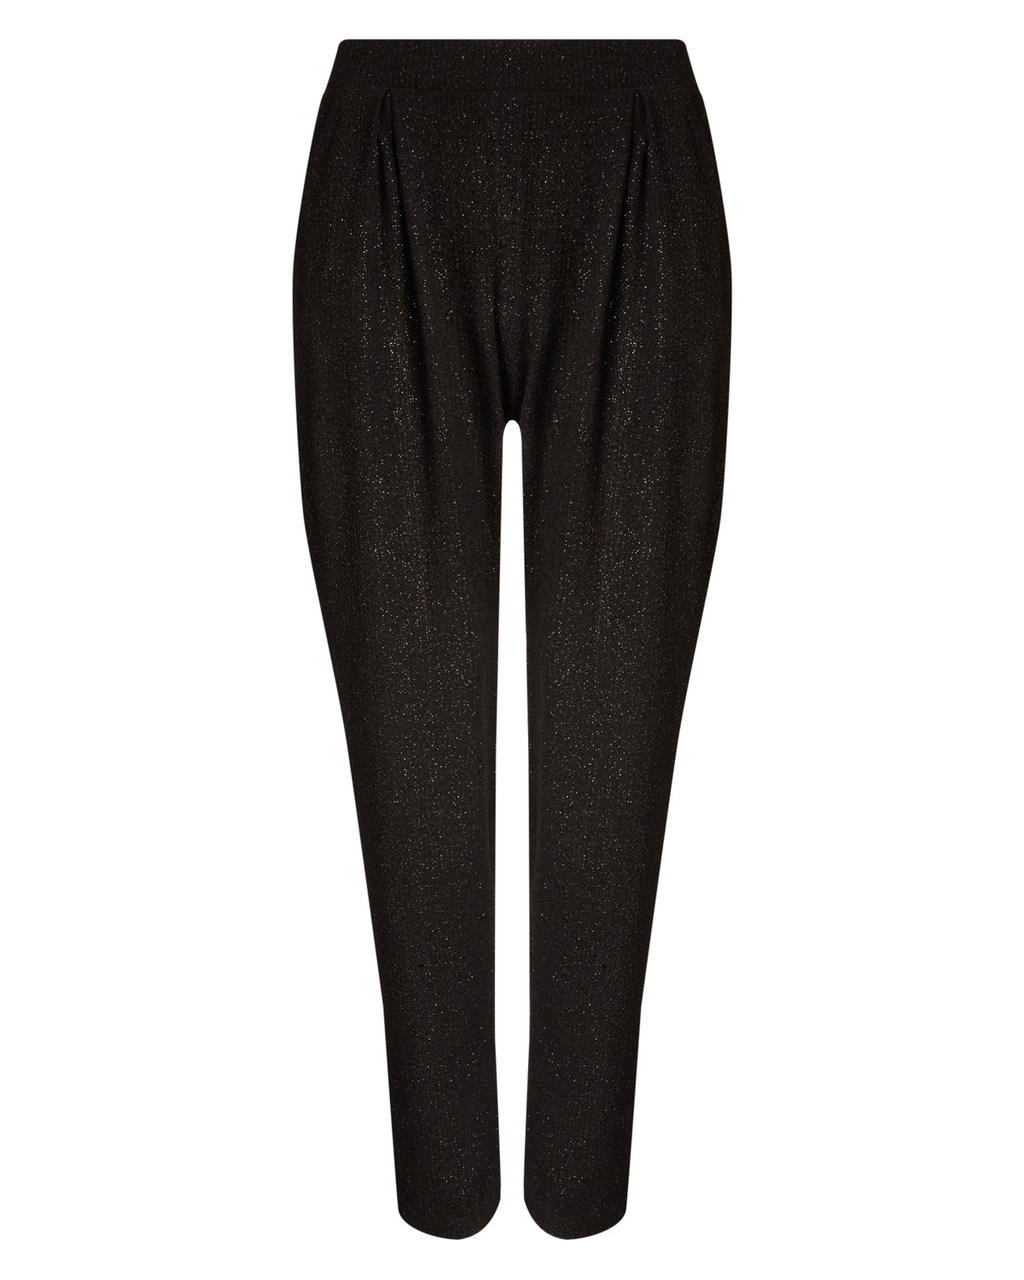 Lexie Sparkle Soft Trouser - length: standard; pattern: plain; waist detail: elasticated waist; style: peg leg; waist: high rise; predominant colour: black; occasions: evening; fibres: polyester/polyamide - stretch; fit: tapered; pattern type: fabric; texture group: woven light midweight; embellishment: glitter; season: a/w 2015; wardrobe: event